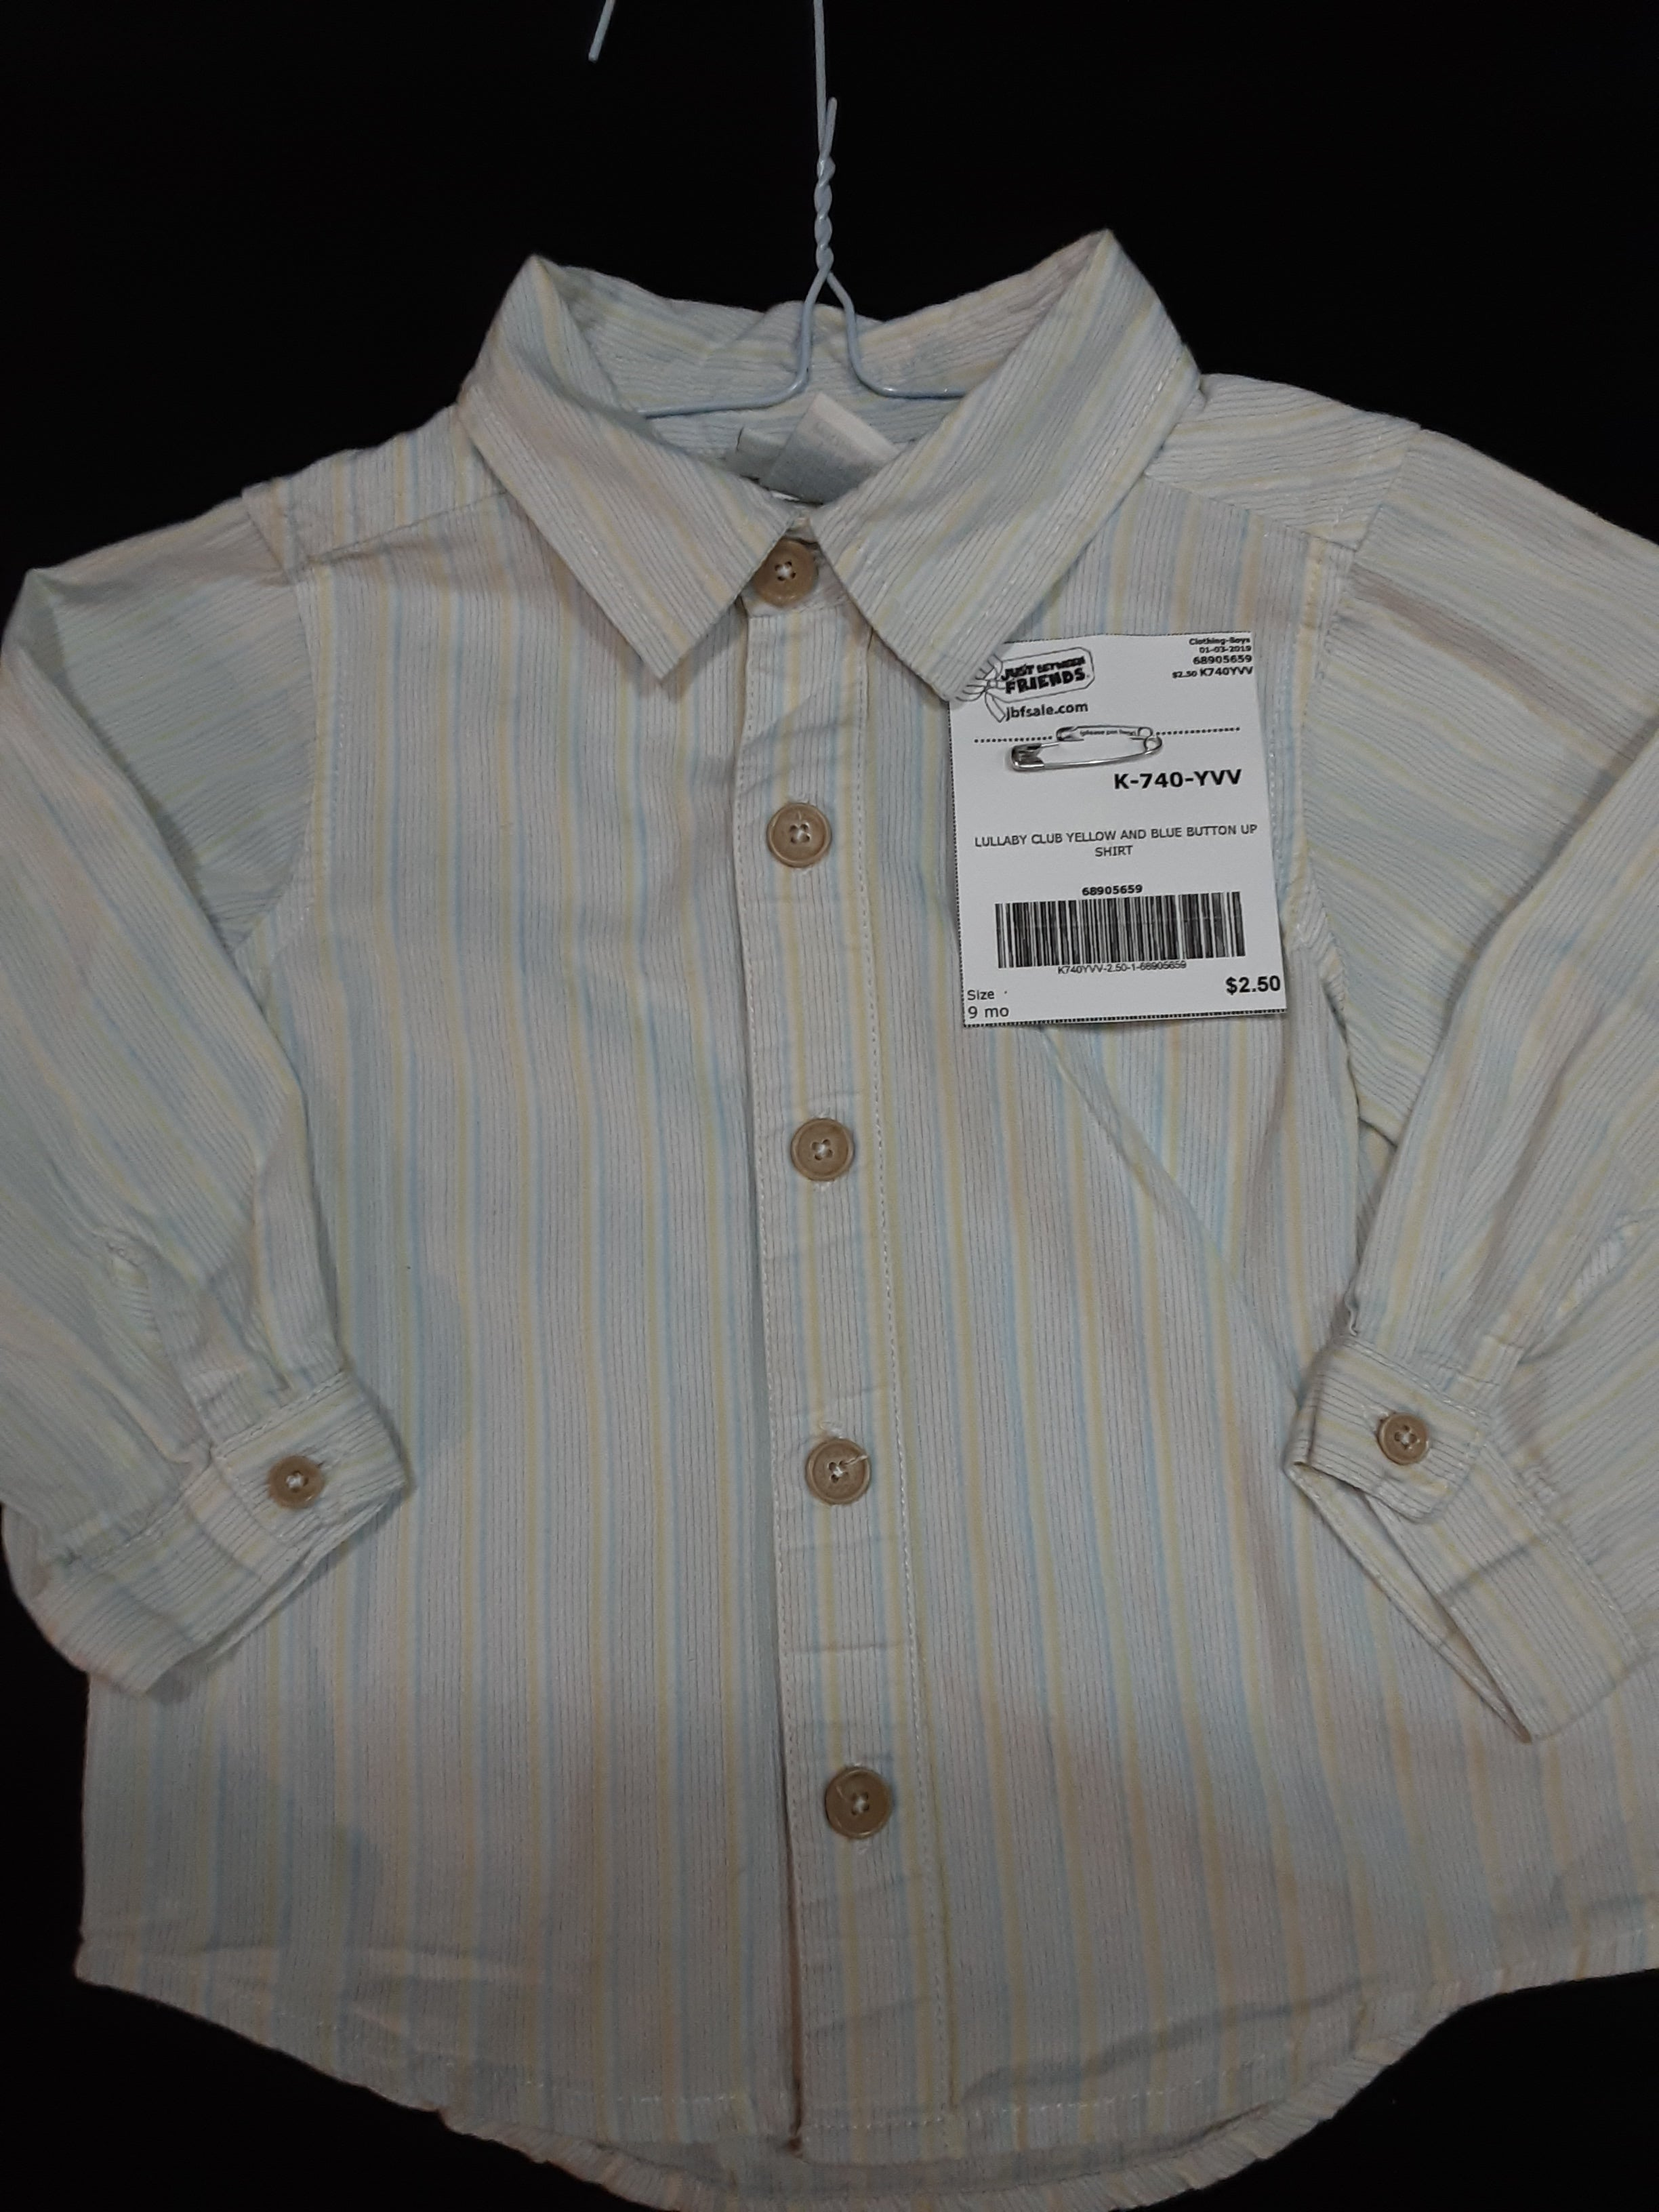 LULLABY CLUB yellow and blue striped button up  shirt  Size 9m boys